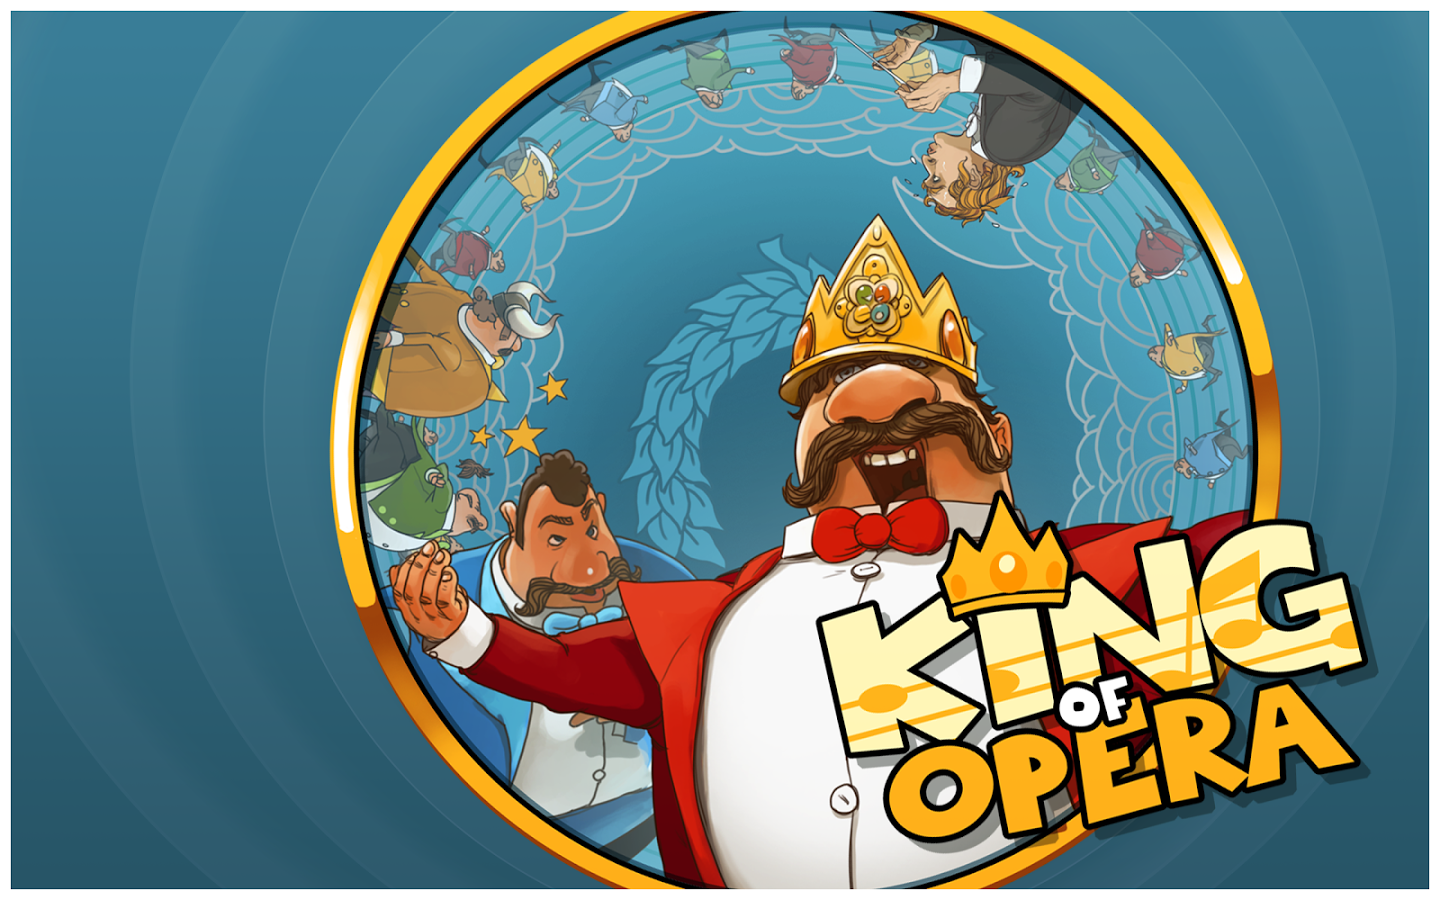 King of Opera - Party Game! v1.14.17 [Full] APK